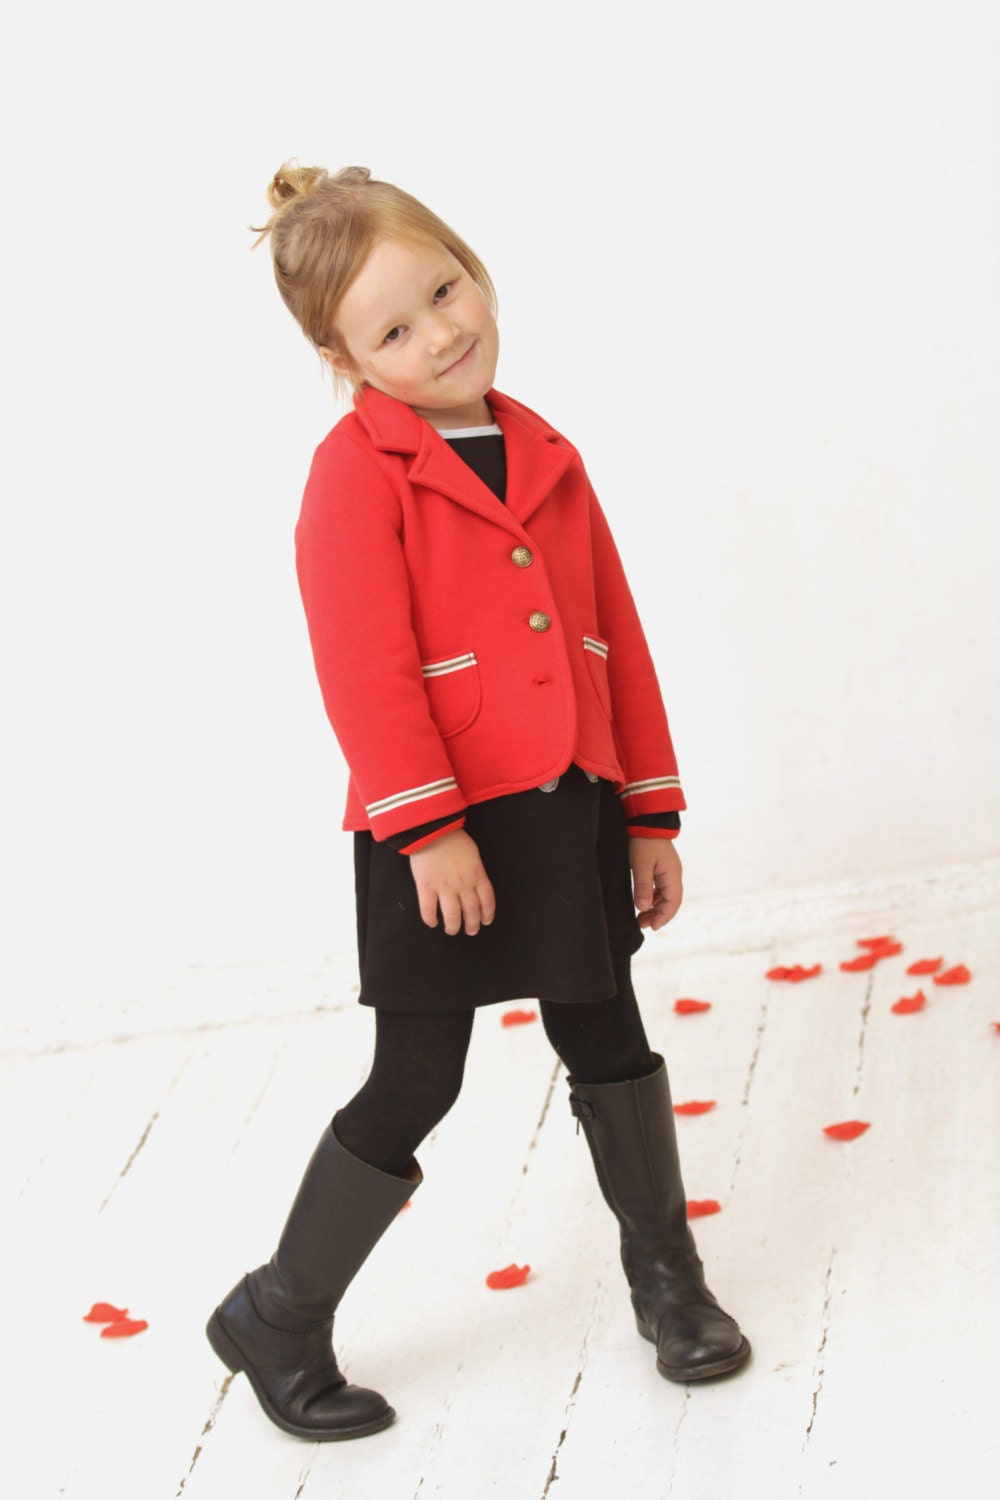 Popular toddler girl blazer of Good Quality and at Affordable Prices You can Buy on AliExpress. We believe in helping you find the product that is right for you.